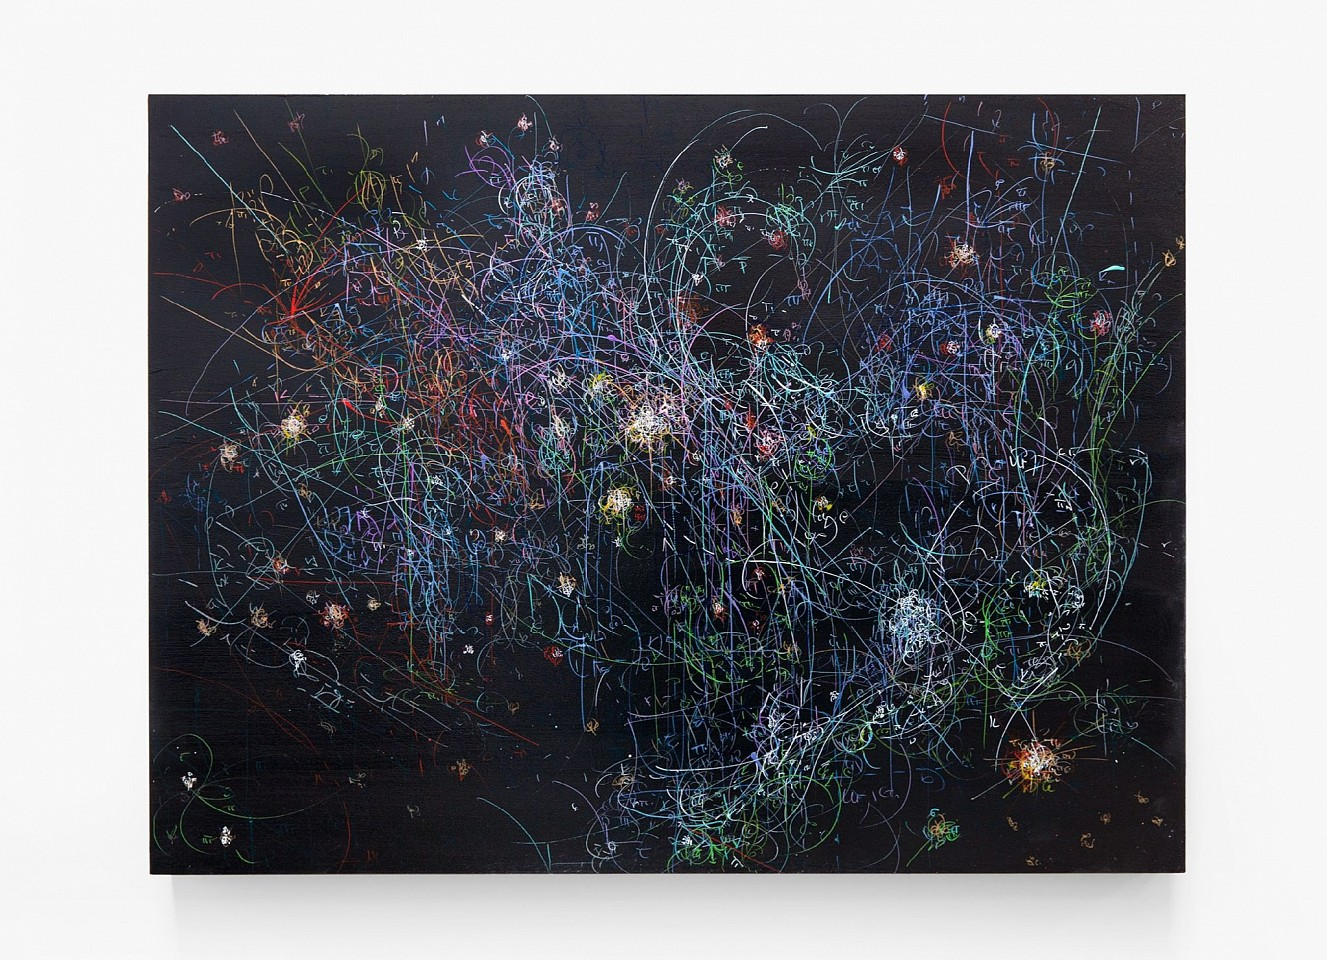 Kysa Johnson ,   Blow Up 284 - the long goodbye - subatomic decay patterns with the Orion Nebula  ,  2015     ink and high gloss on board ,  24 x 30 in. (61 x 76.2 cm)     JOHK00001